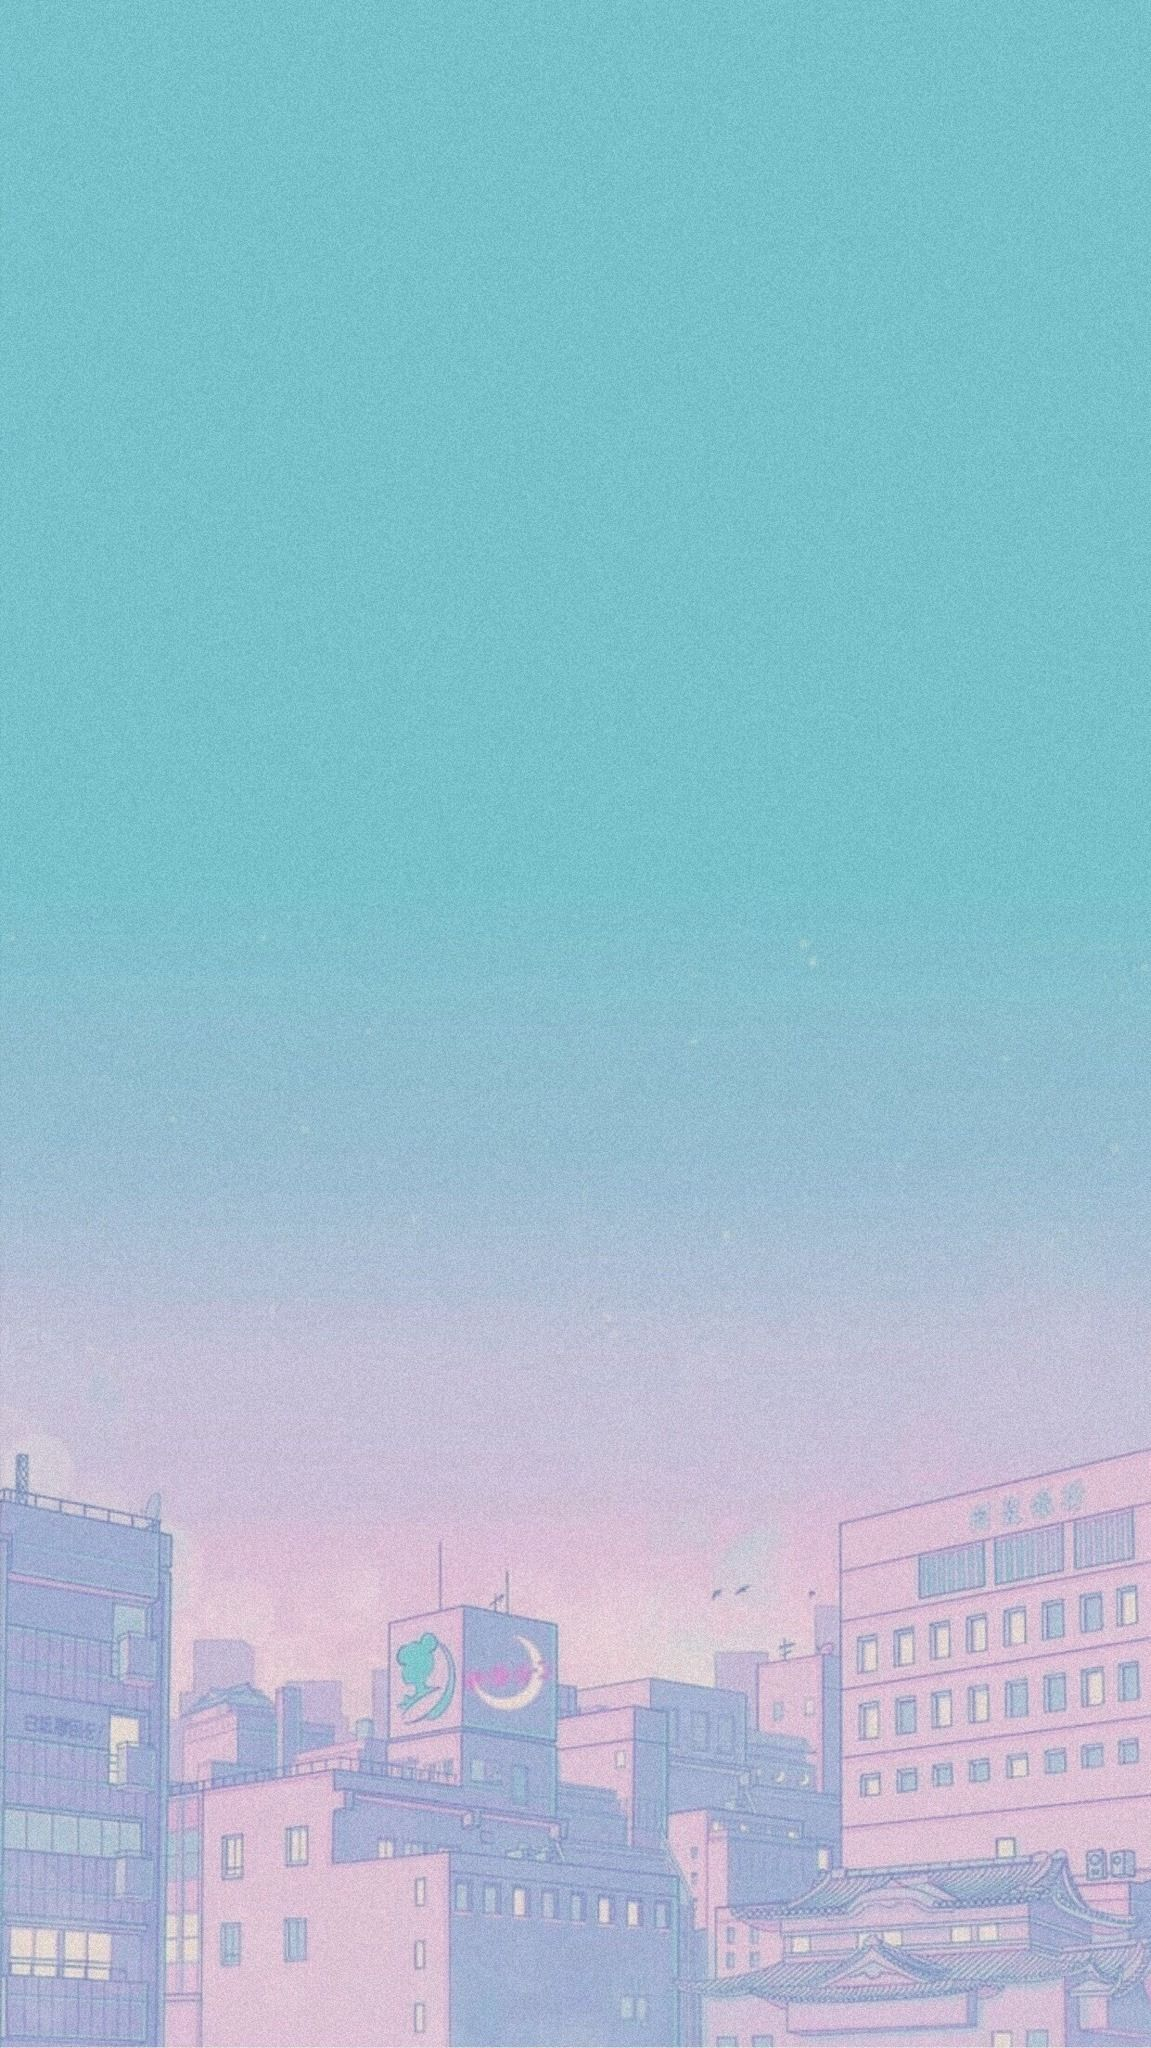 90s Anime Aesthetic In 2020 Anime Wallpaper Iphone Cute Pastel Wallpaper Minimalist Wallpaper